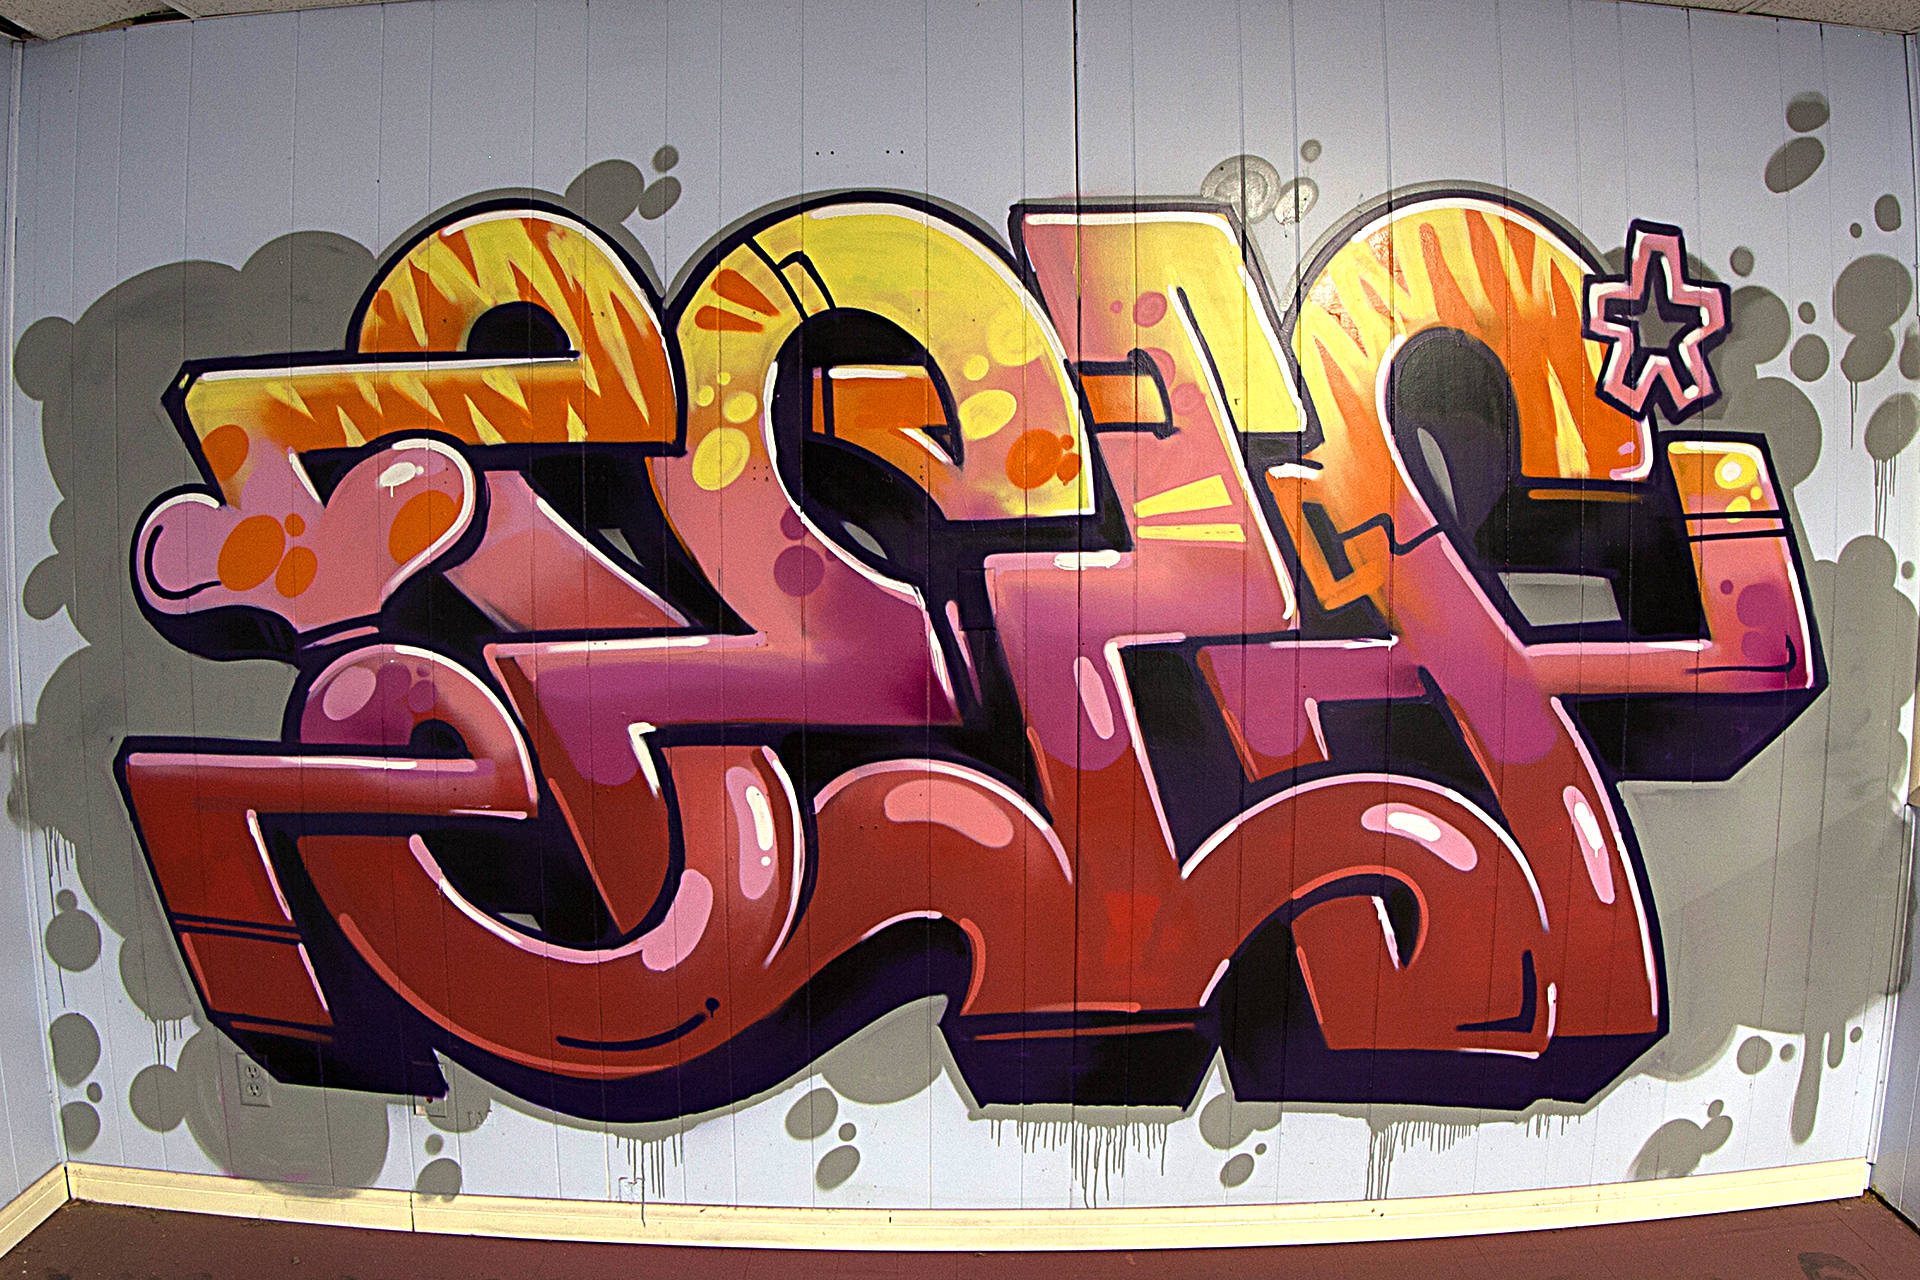 Cool Office Work Selfuno Self Graffiti Mural With Street Wall Painting Hip Hop